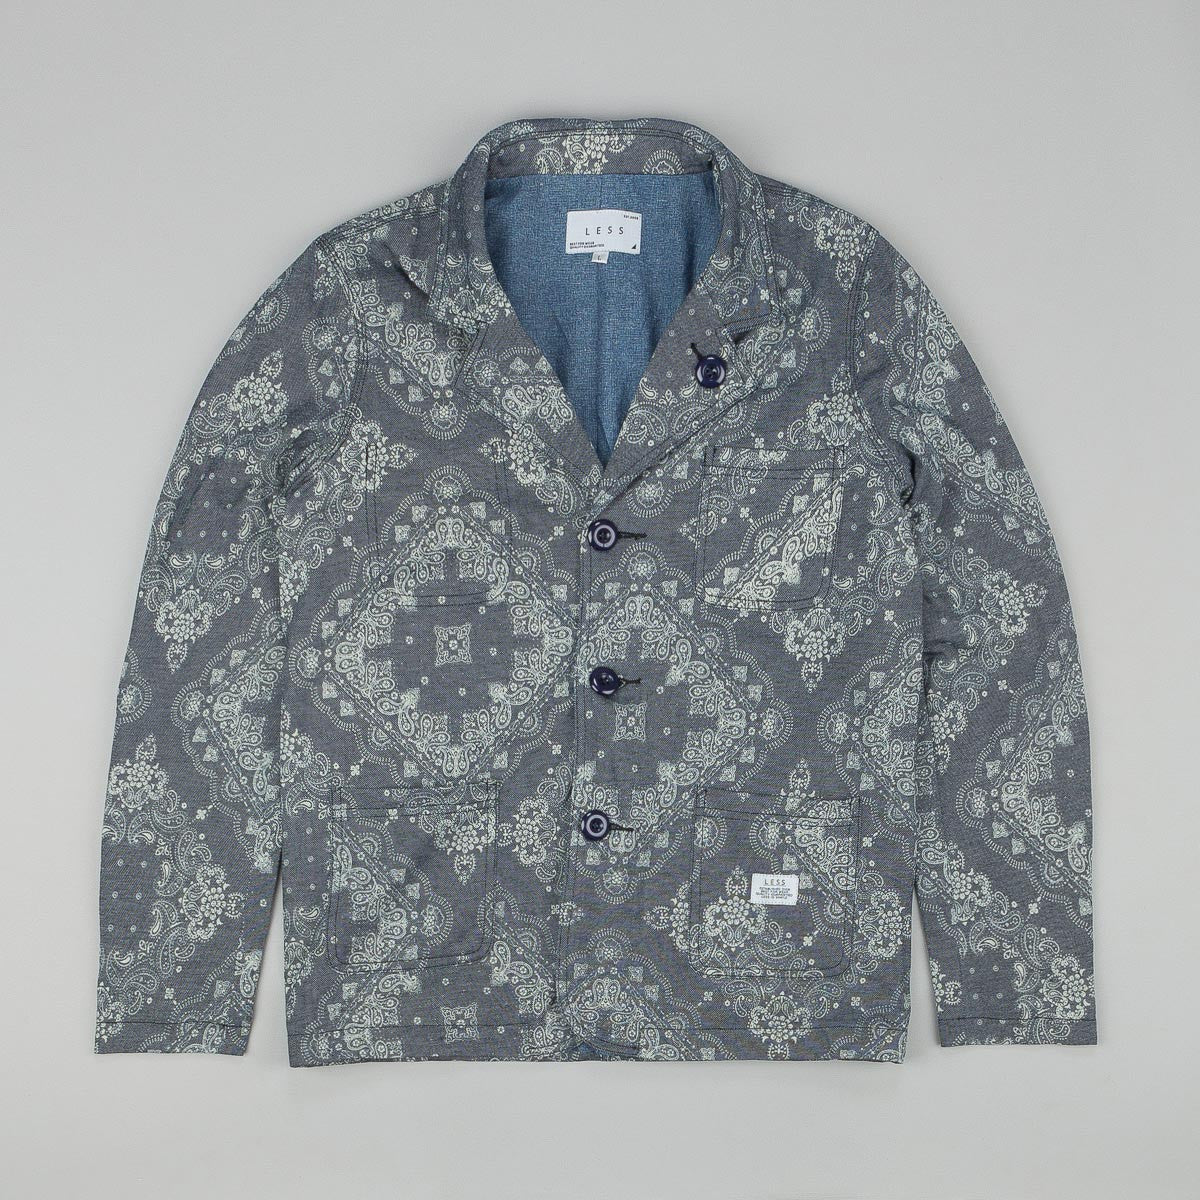 Less Paisley Pattern Blazer Blue